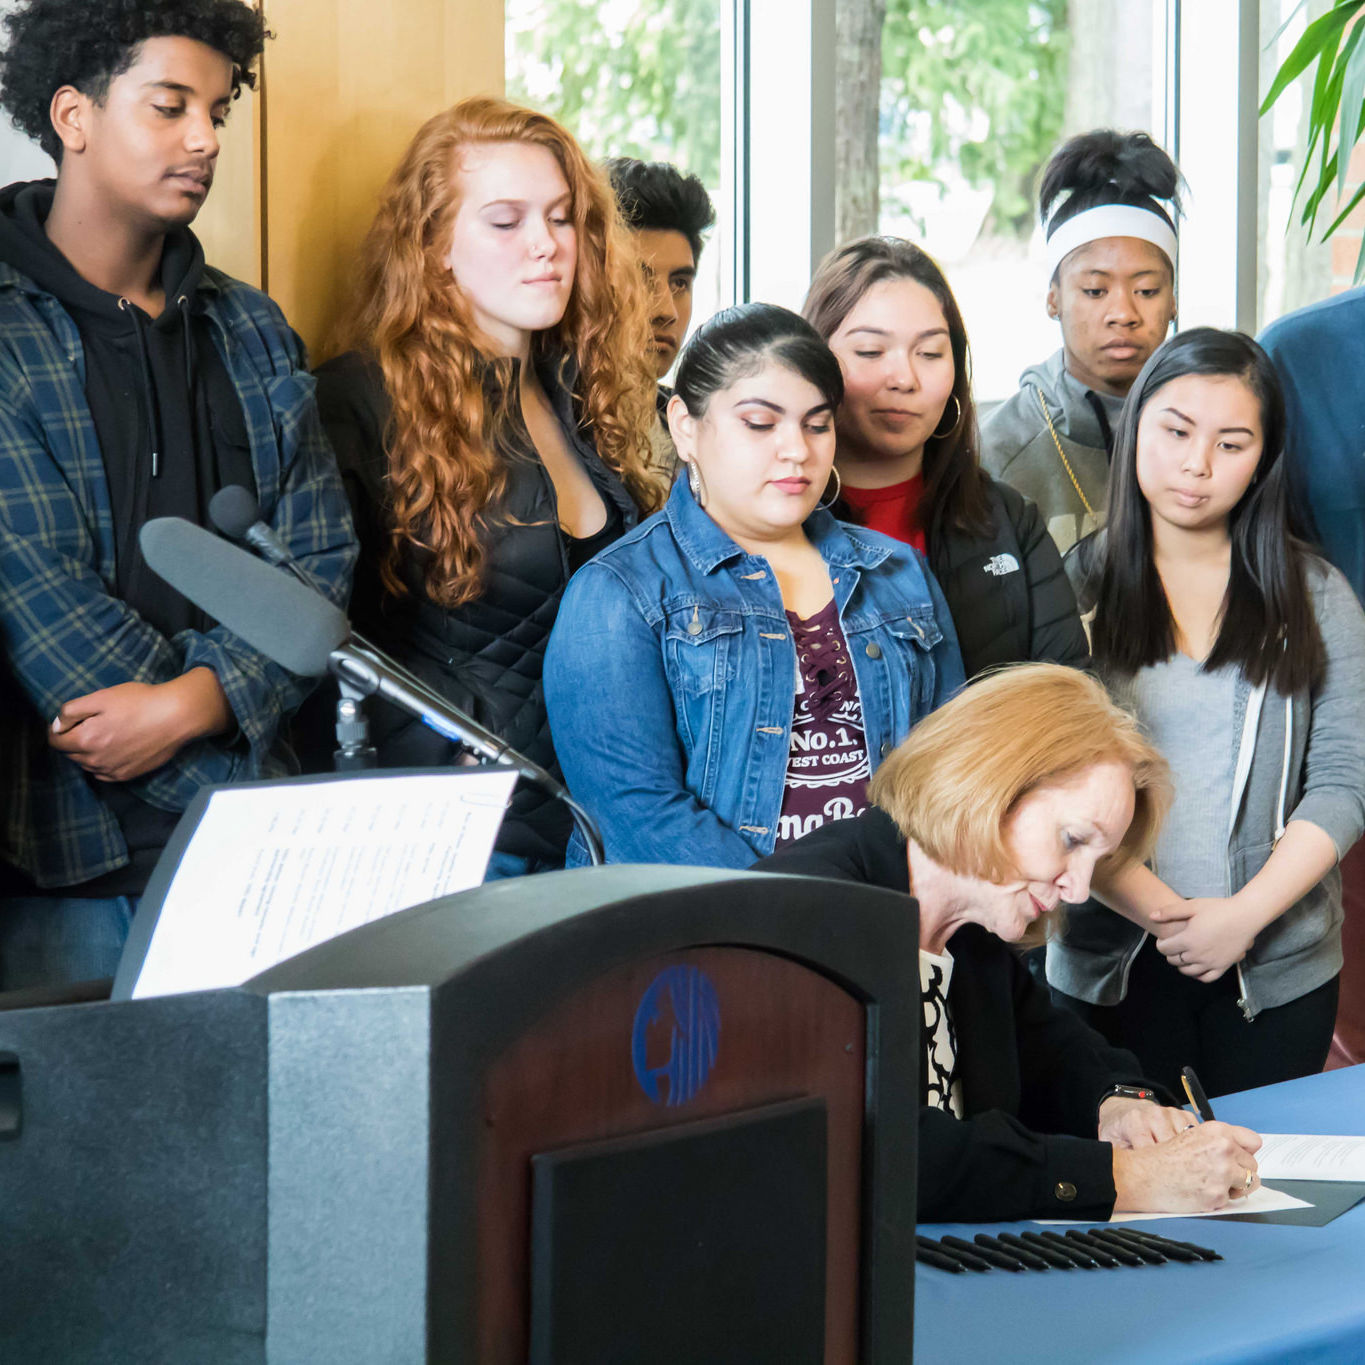 Seattle mayor jenny durkan promise free college tuition signs mou clz7g1